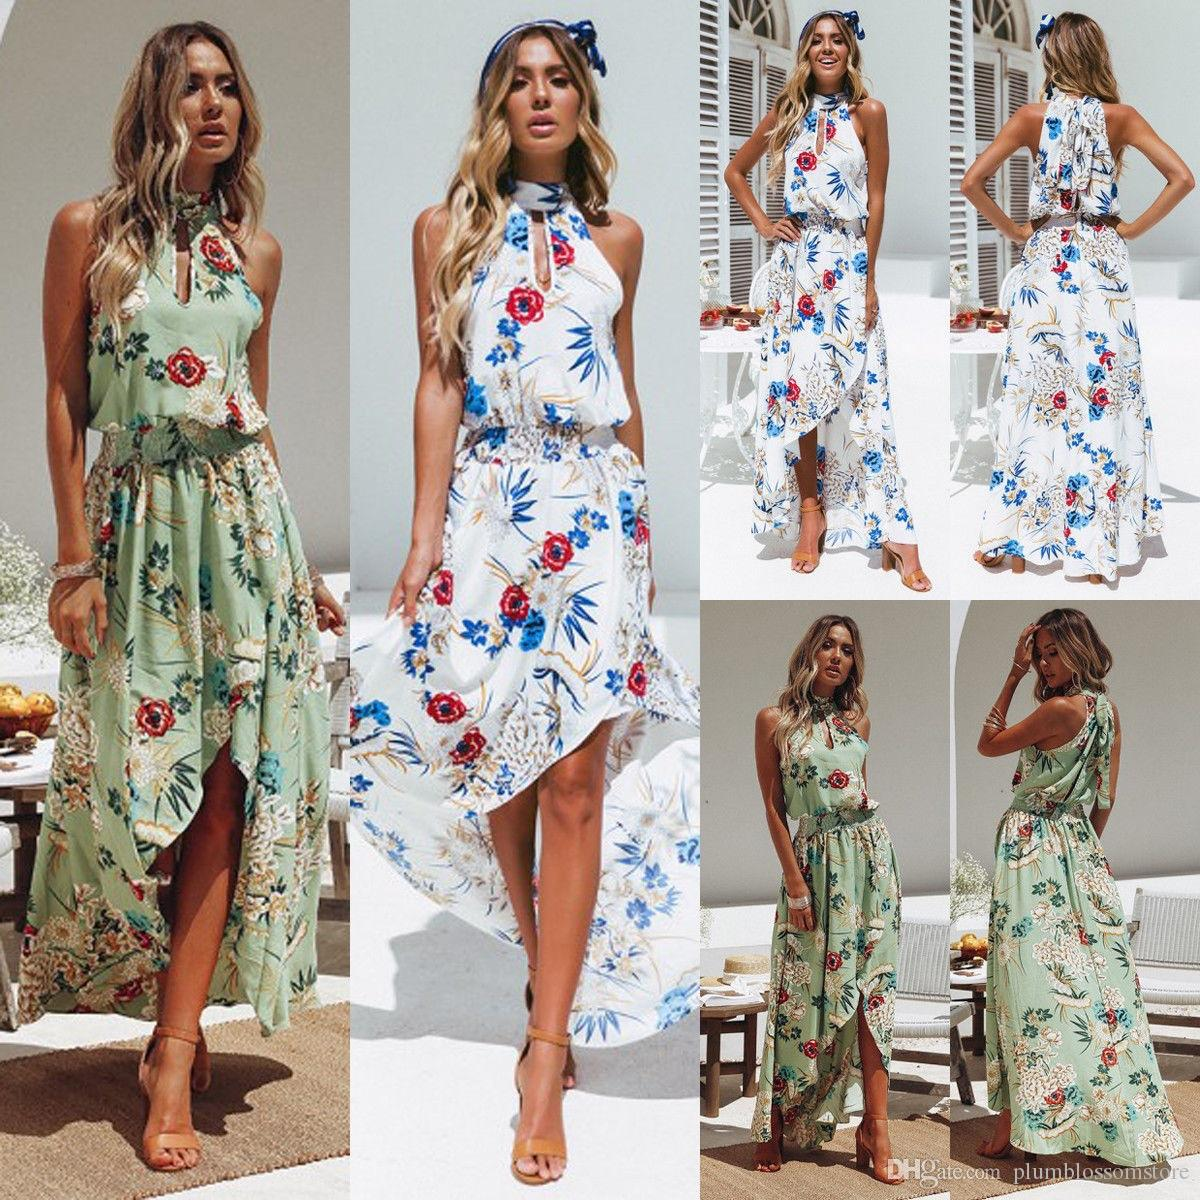 3953ab9b0a841 Fashion Summer Dress Women Sexy Halter Irregular Boho Floral Printed  Bohemian Maxi Dress 2018 New Beach Holiday Seaside Backless Sun Dress Short  Cocktail ...